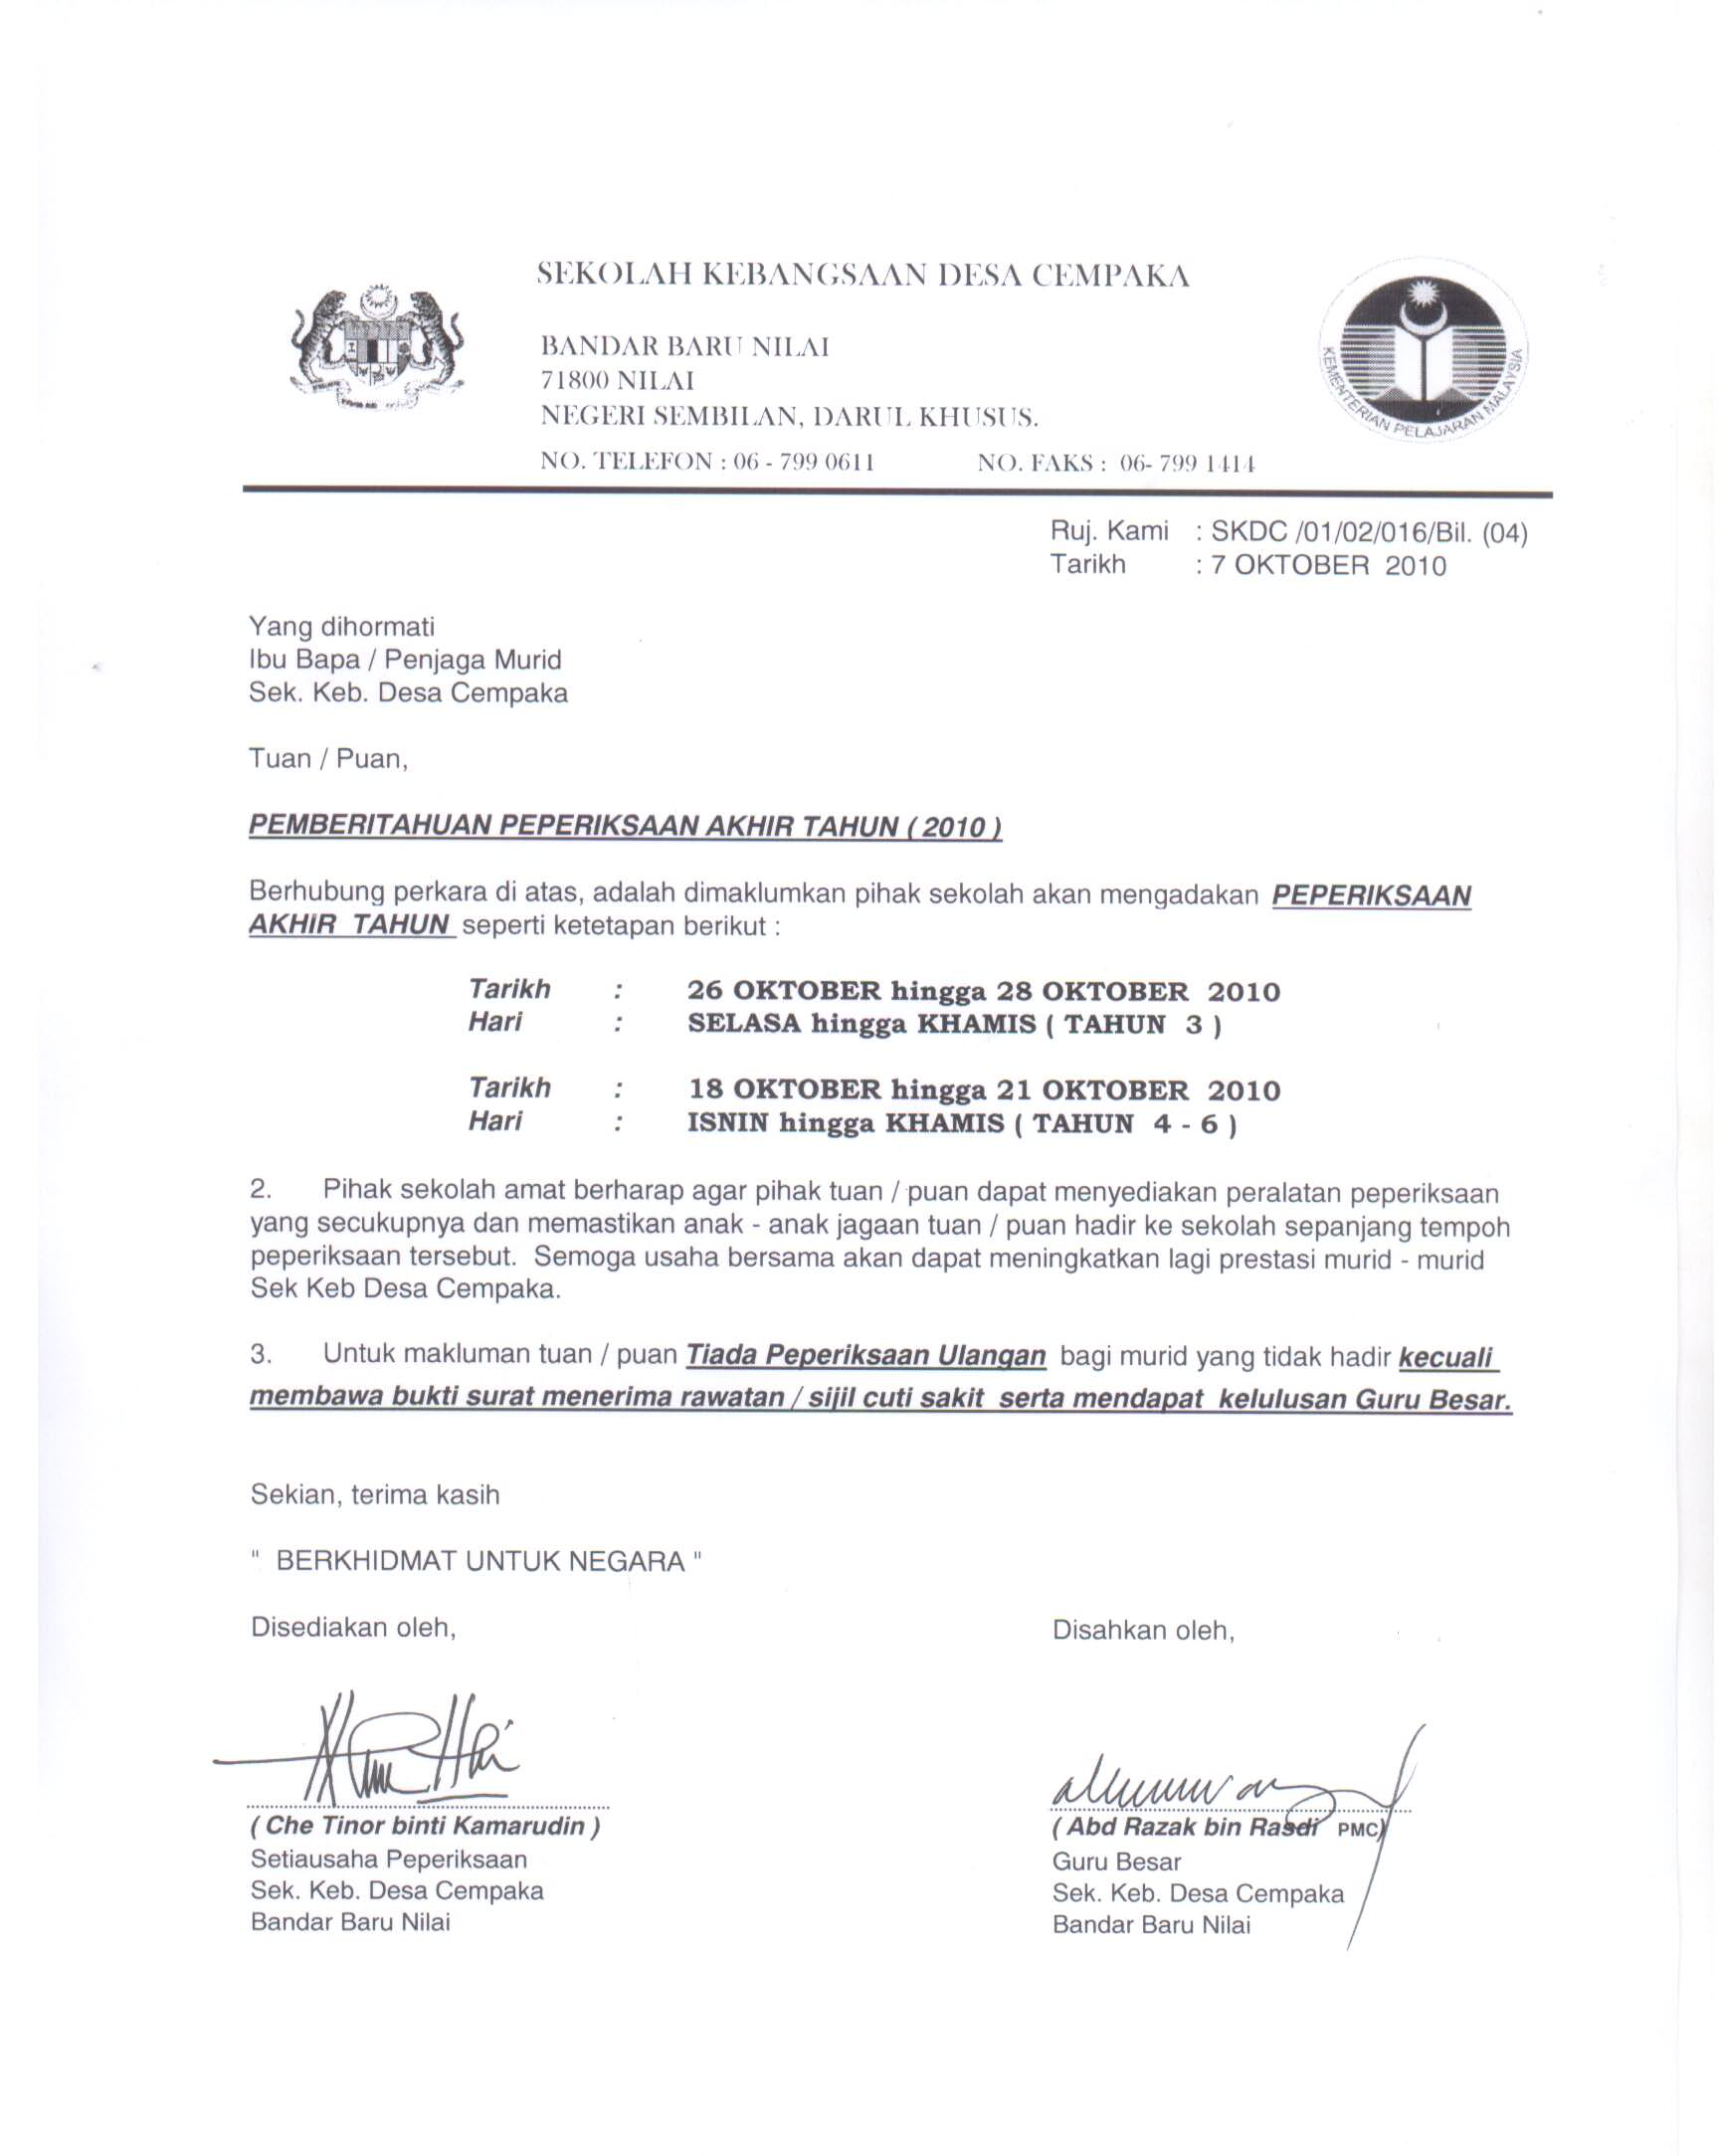 Contoh cover letter untuk jururawat cover letter 100 contoh cover letter bahasa melayu untuk jururawat madrichimfo Image collections